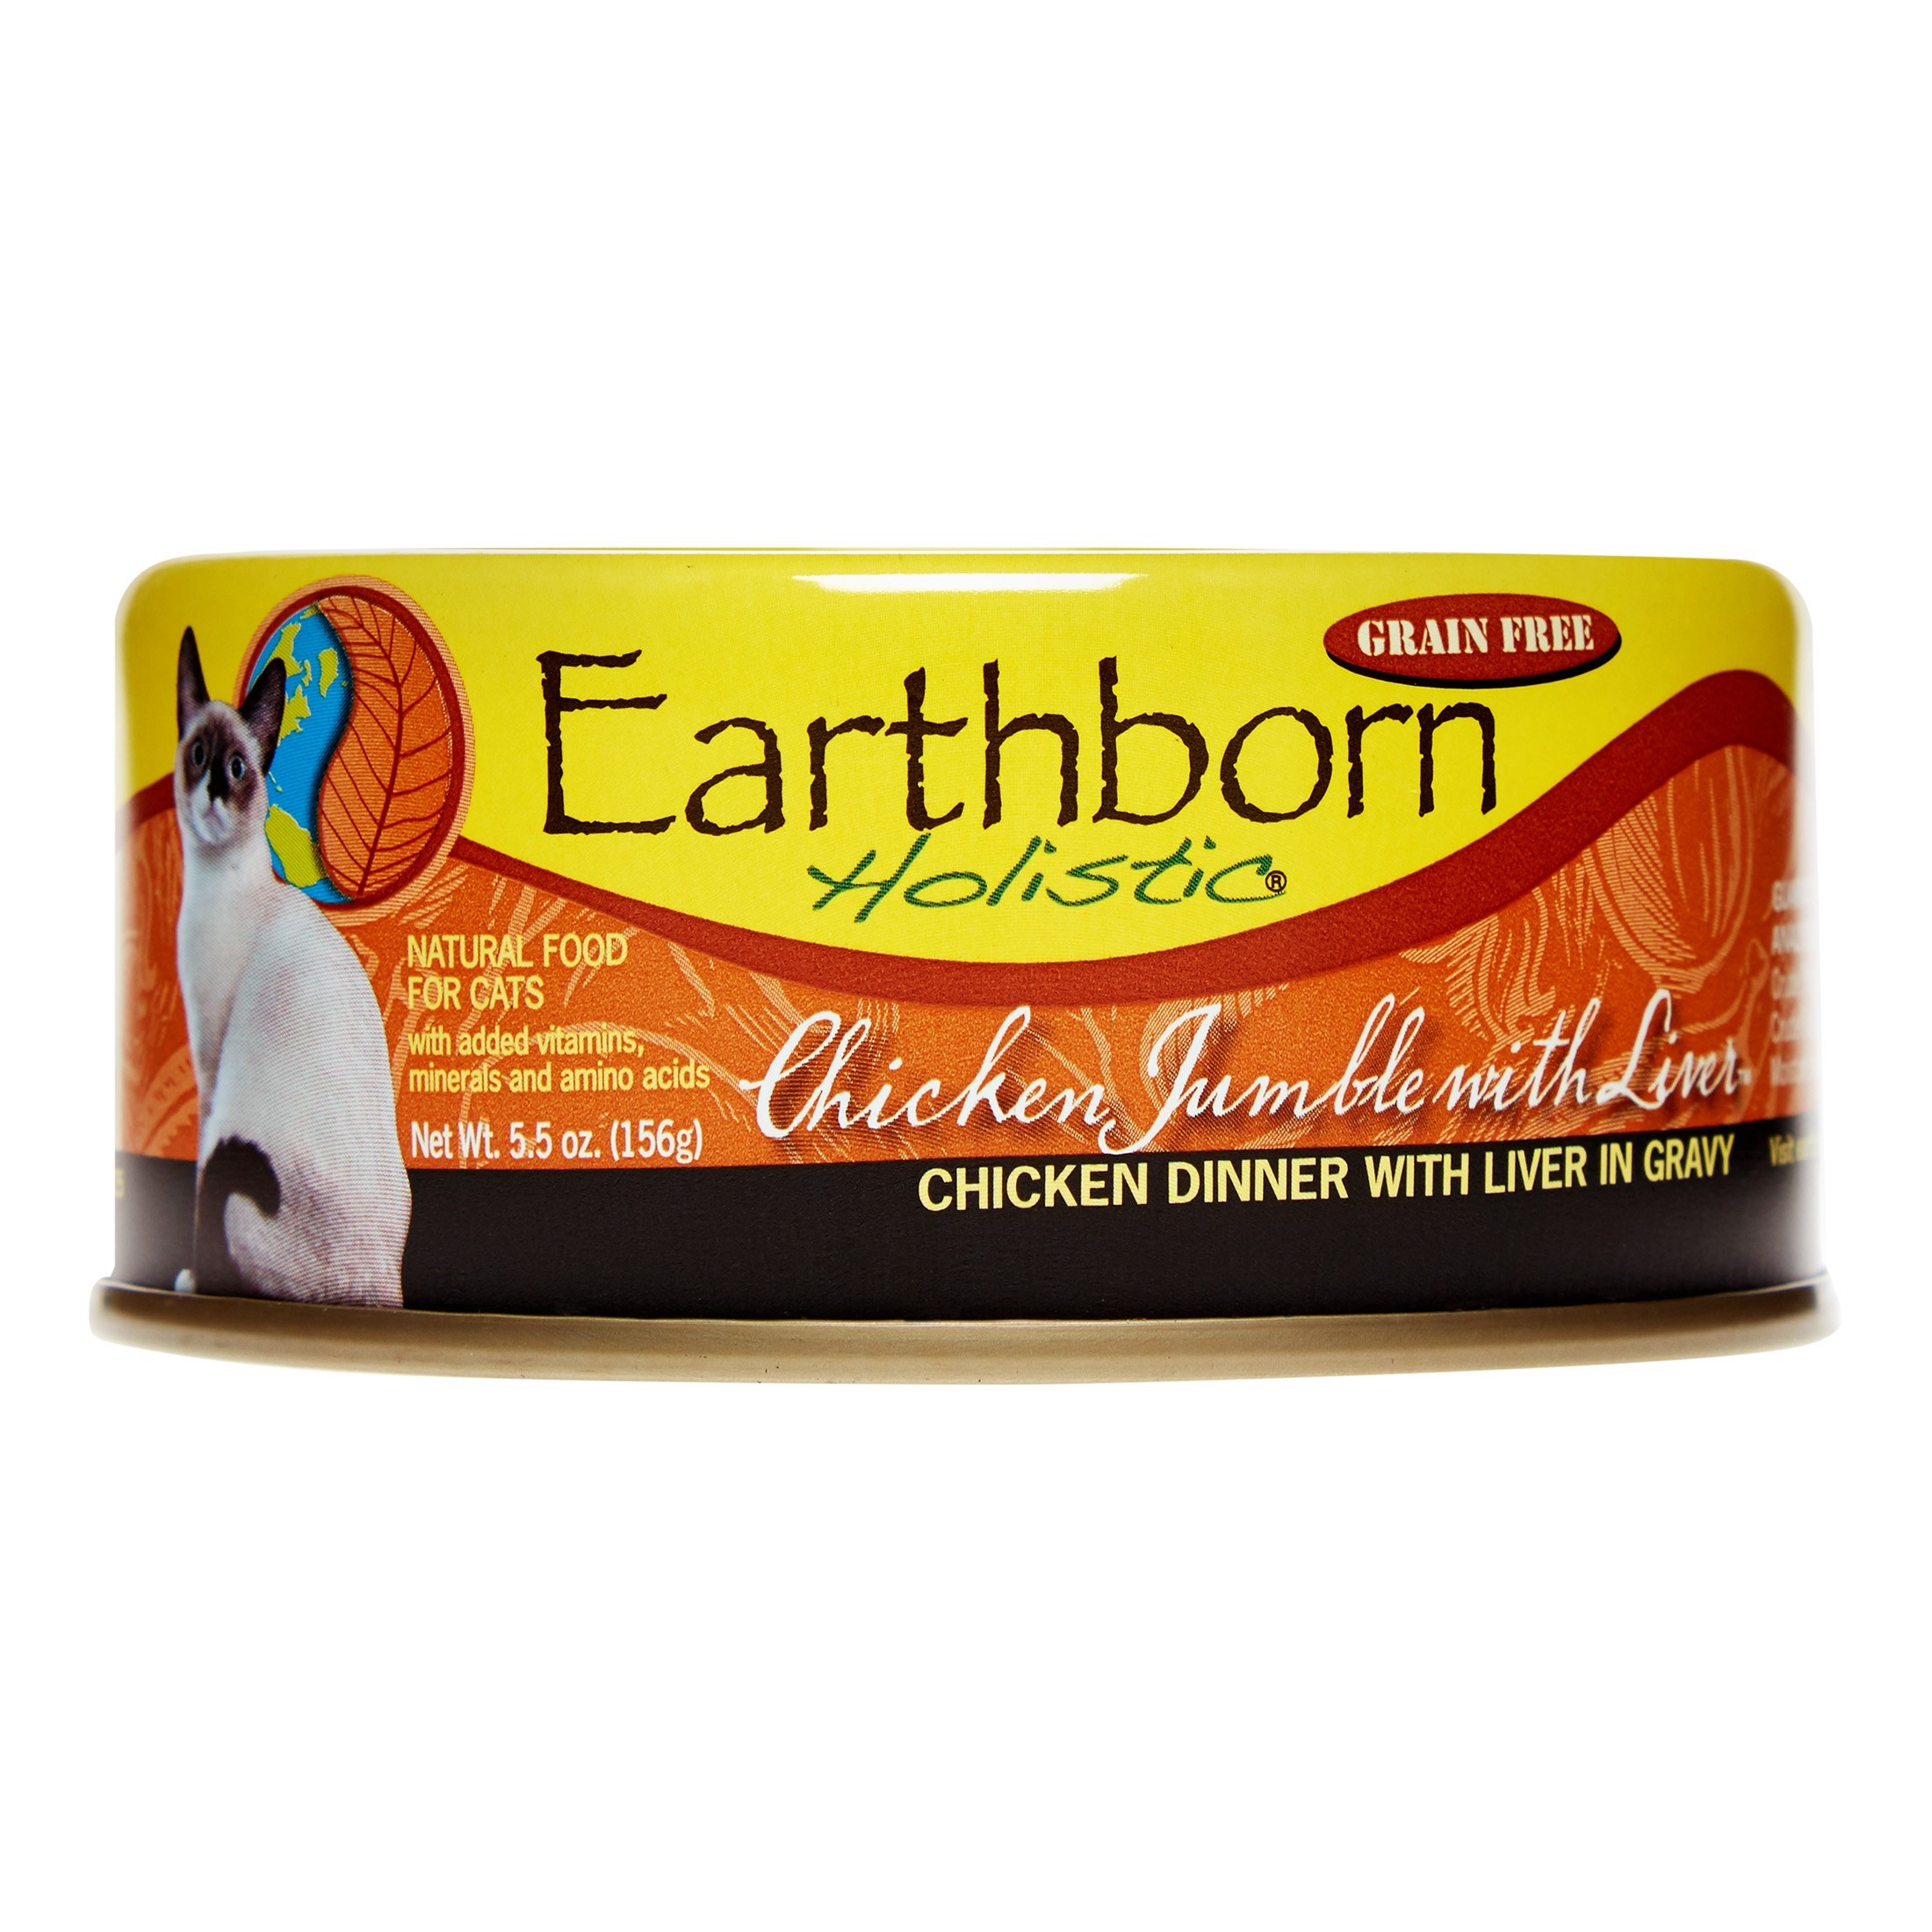 Earthborn Holistic Grain-Free Chicken Jumble with Liver Wet Cat Food, 5.5 oz, 24 Count